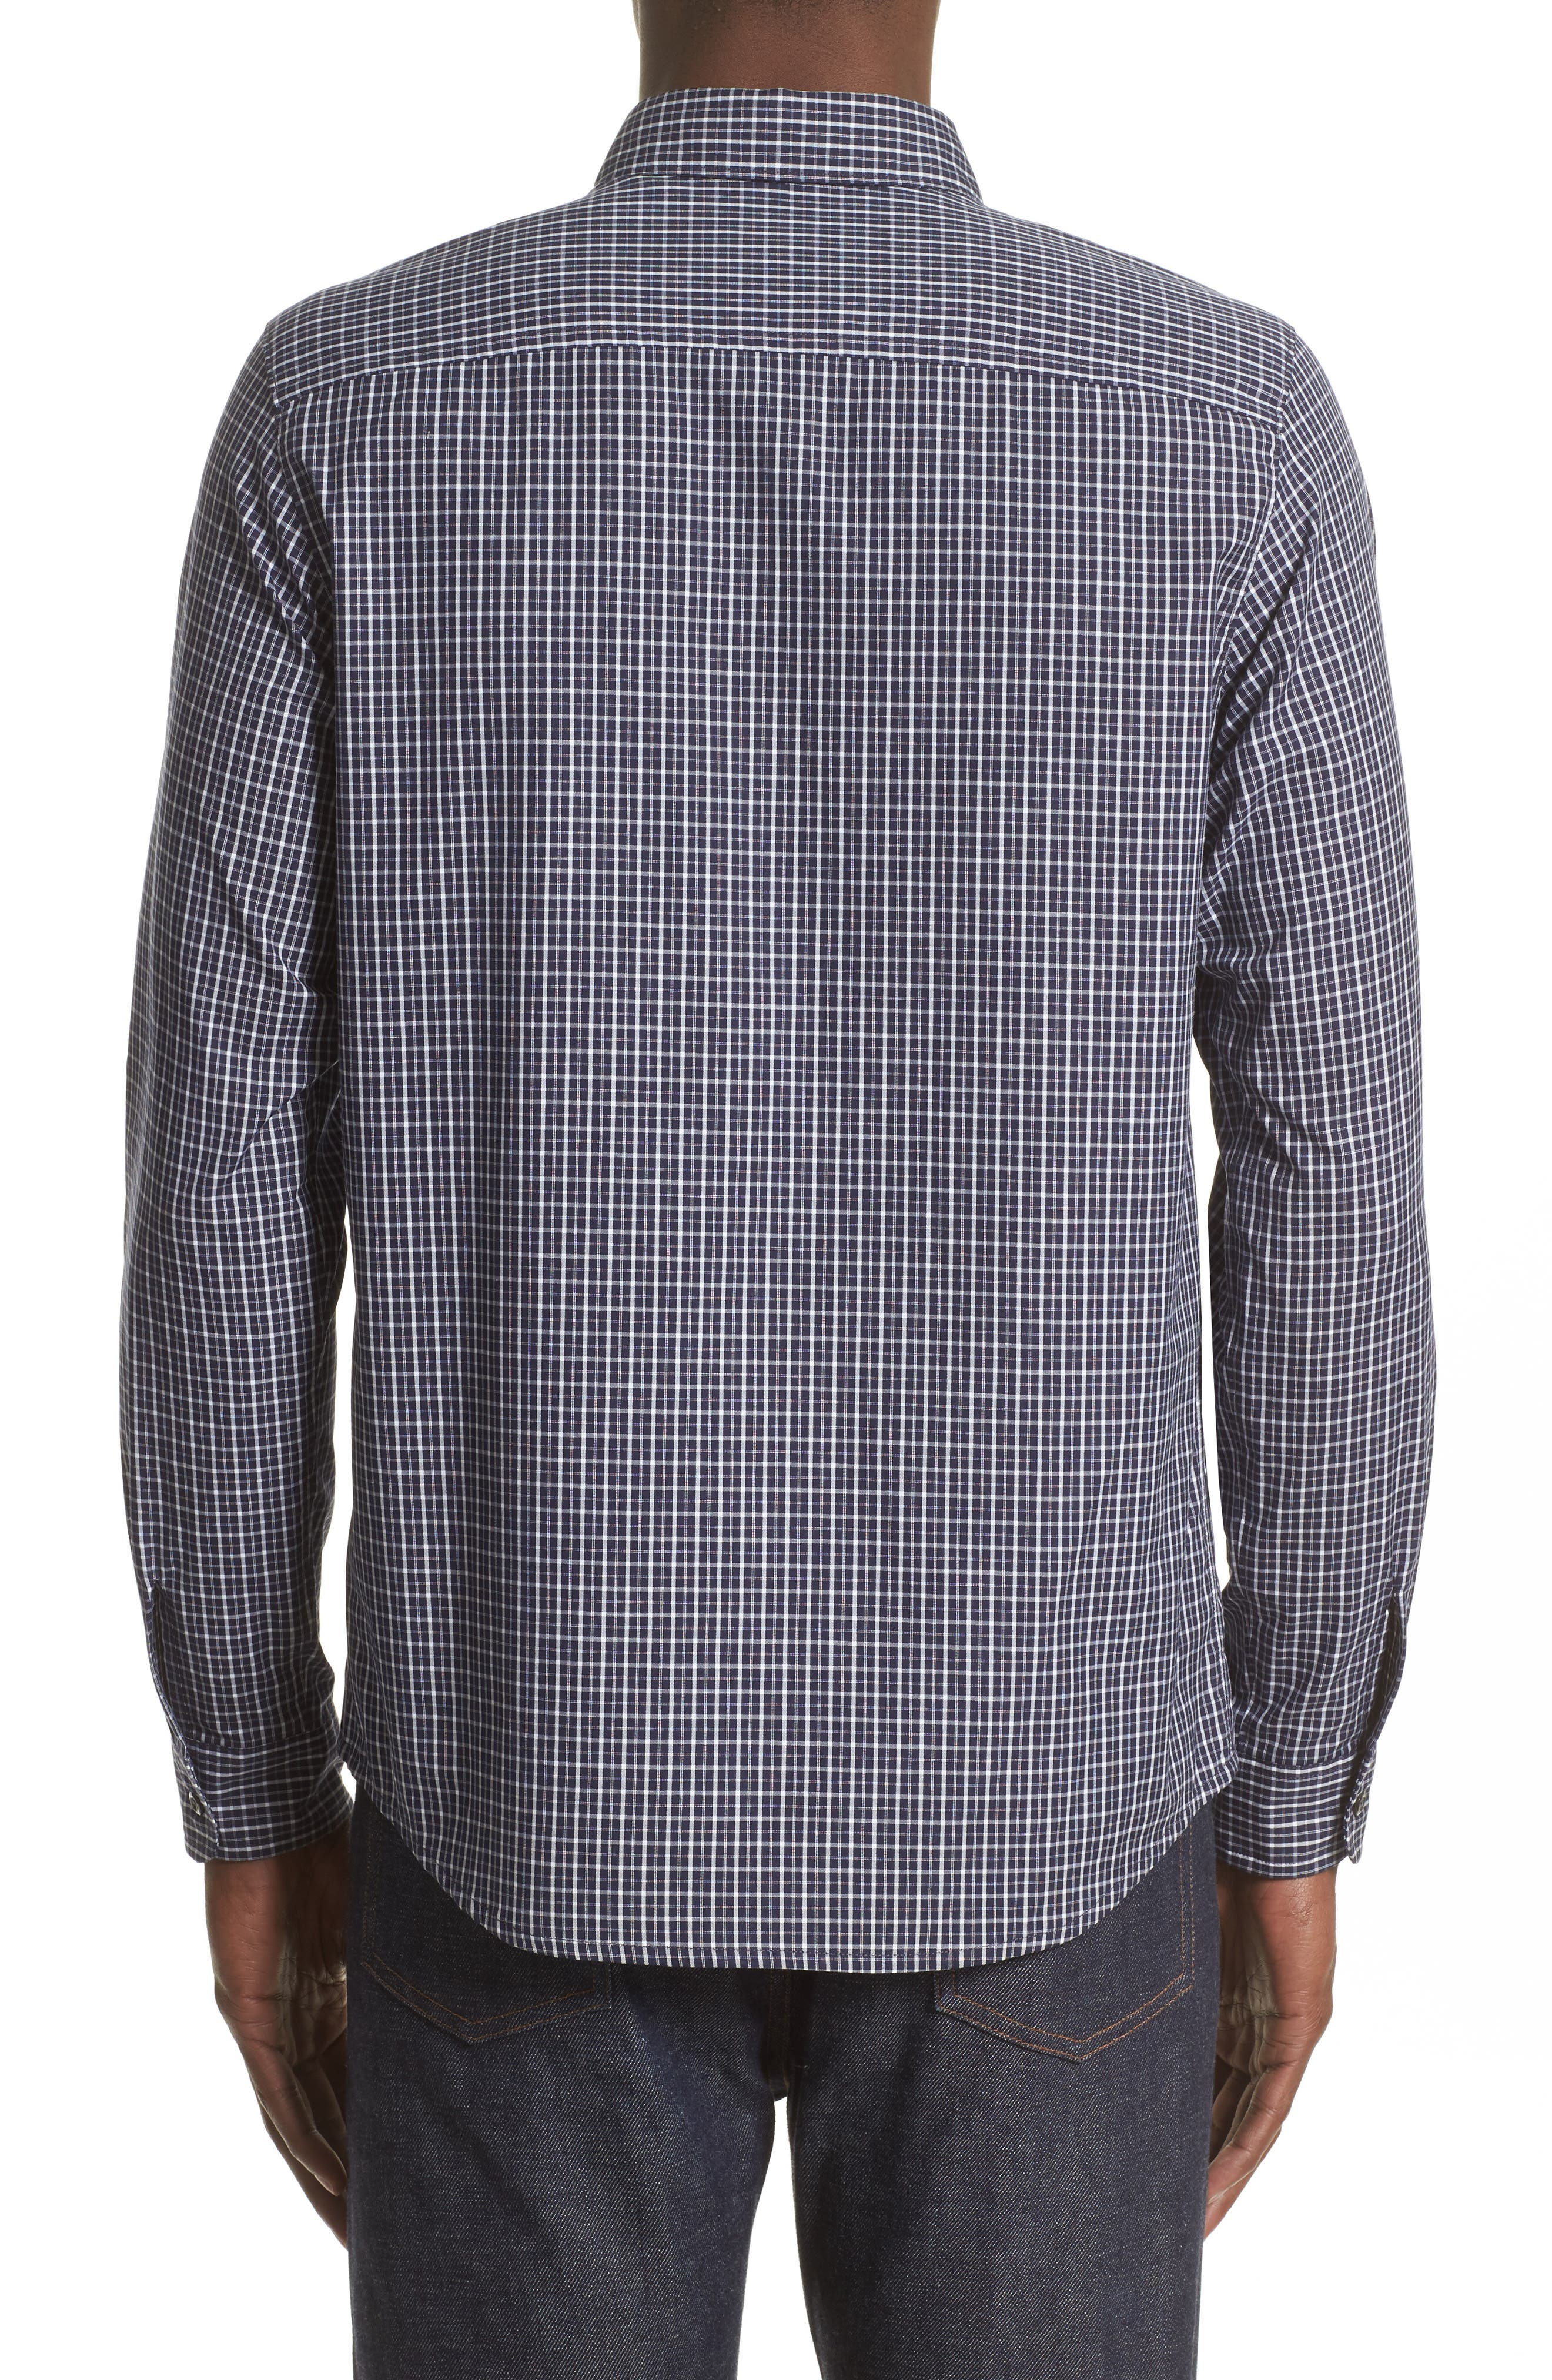 Alternate Image 2  - A.P.C. Chemise Trek Woven Check Sport Shirt